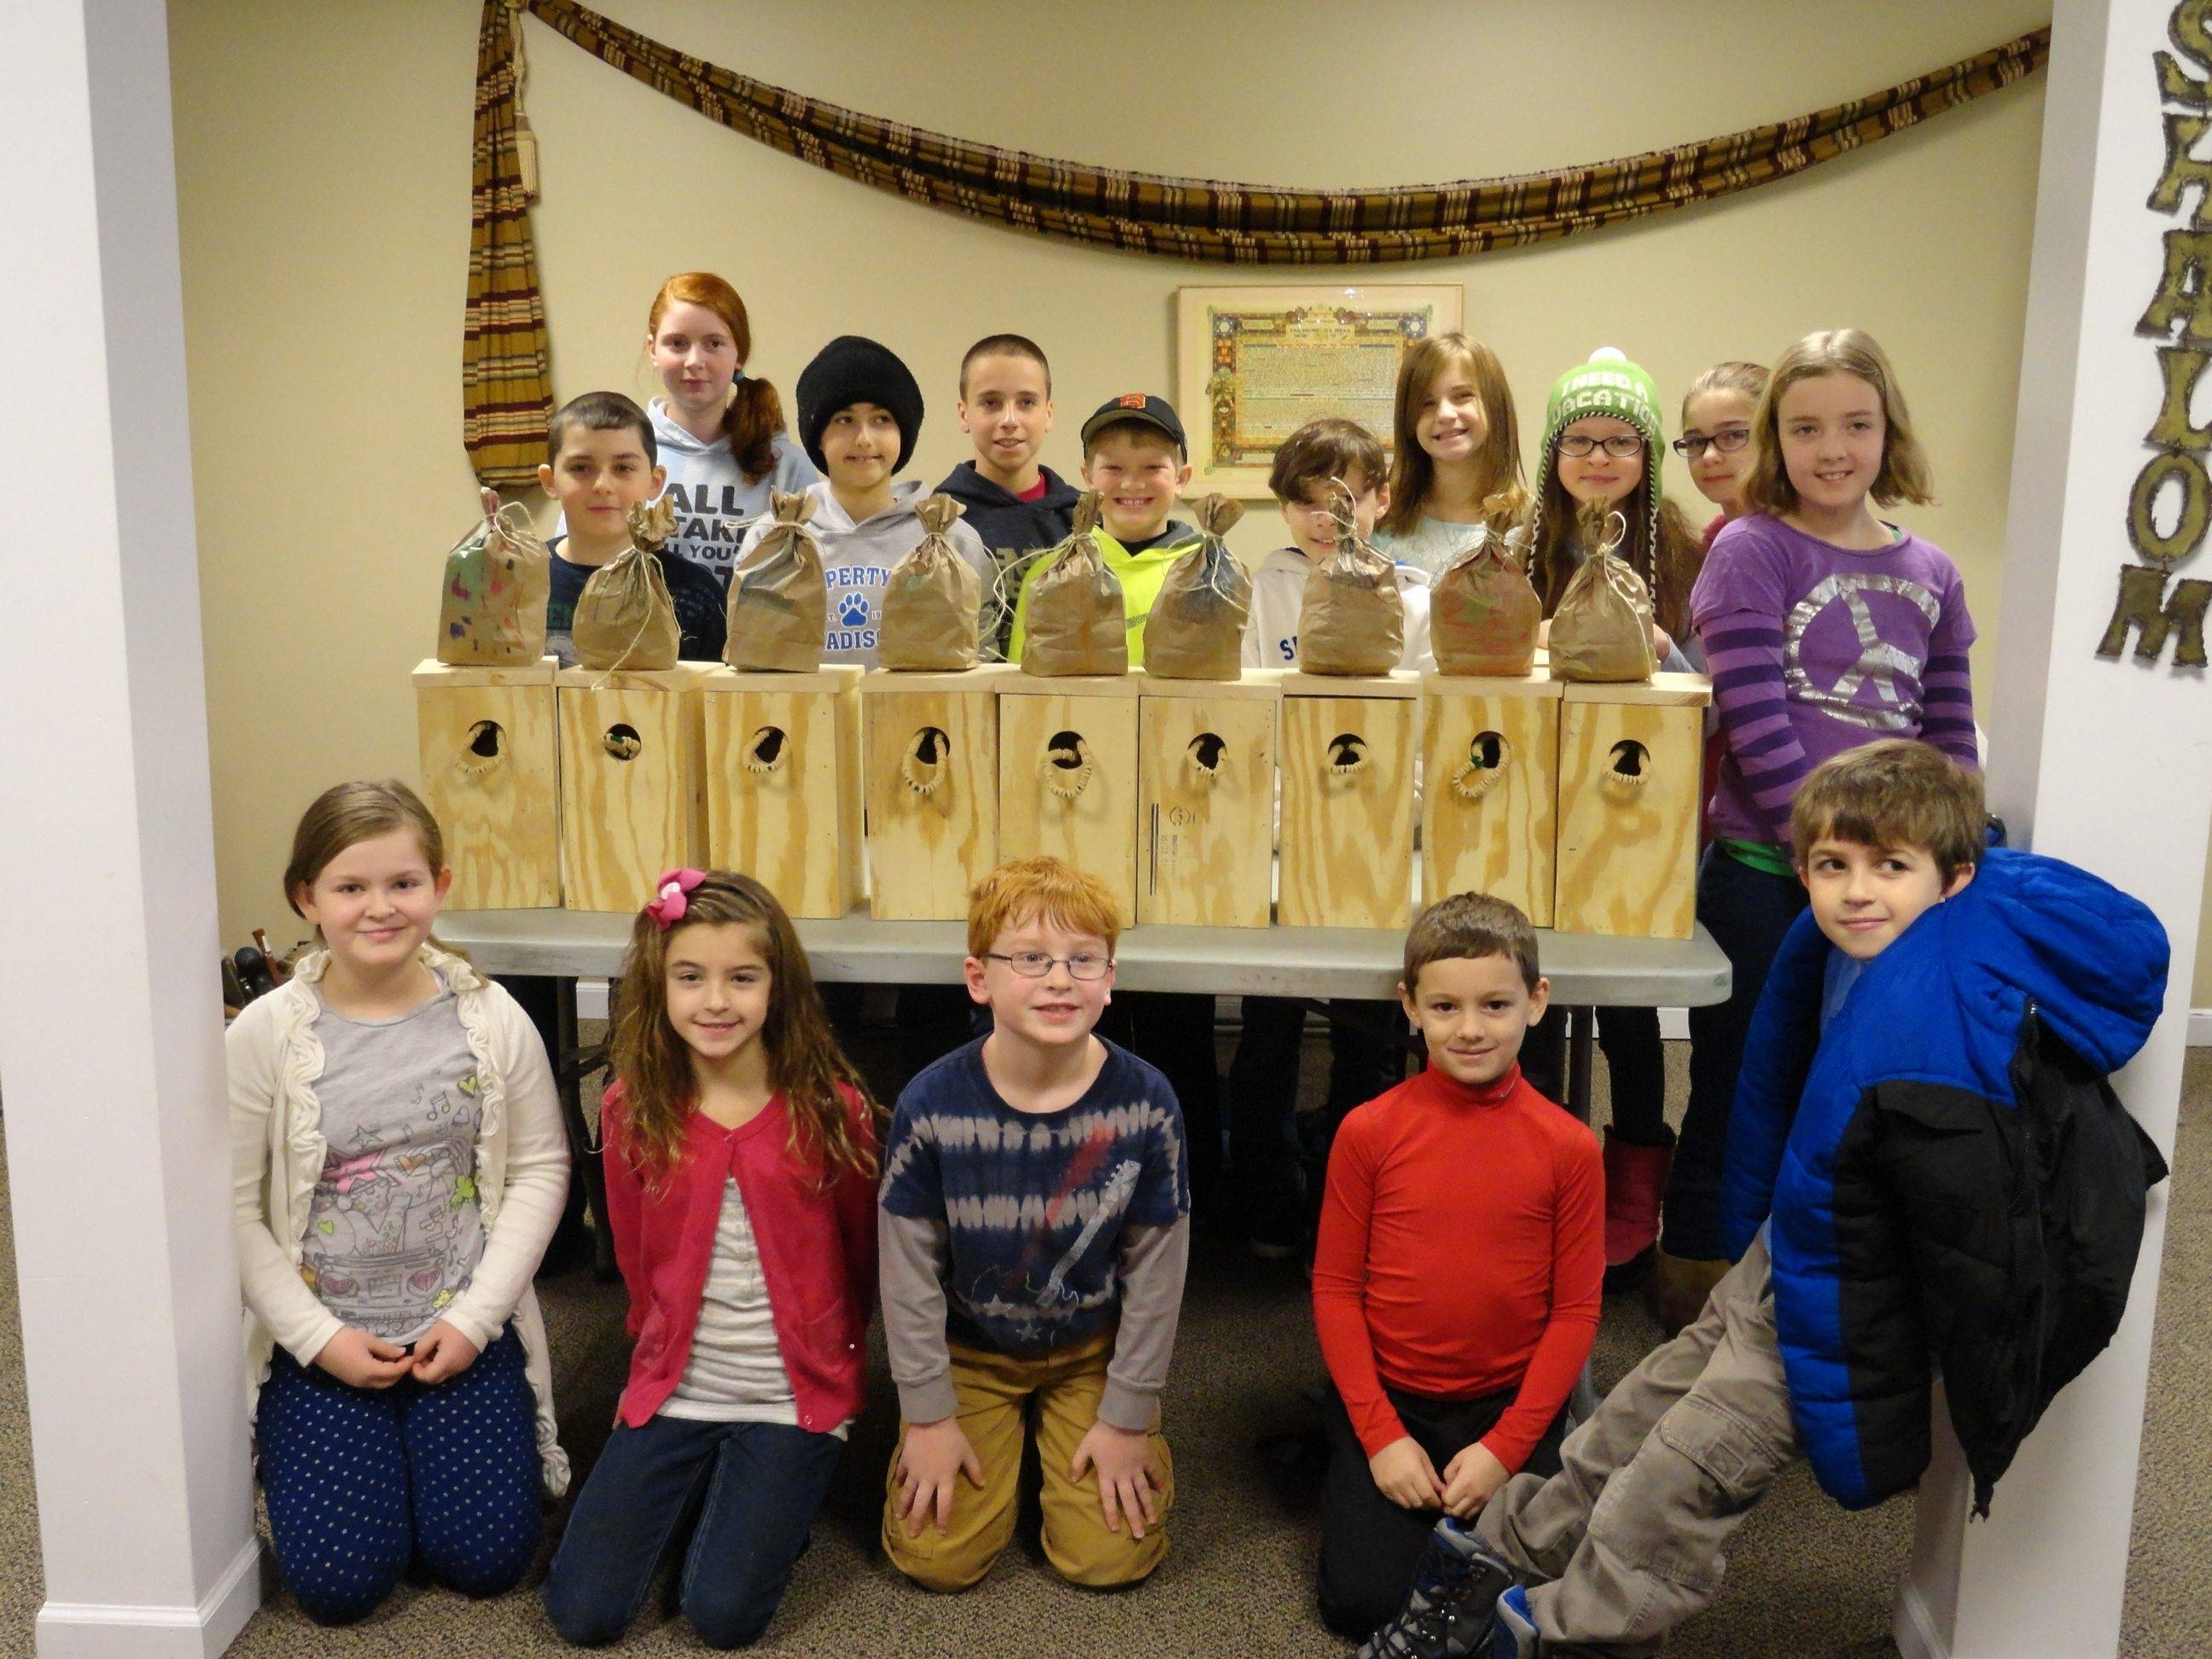 Fox Valley Jewish Neighbors students in third to seventh grade all had a hand in making squirrel boxes during last year's project. Register now for the school at fvjn.org/fox-valley-jewish-school.